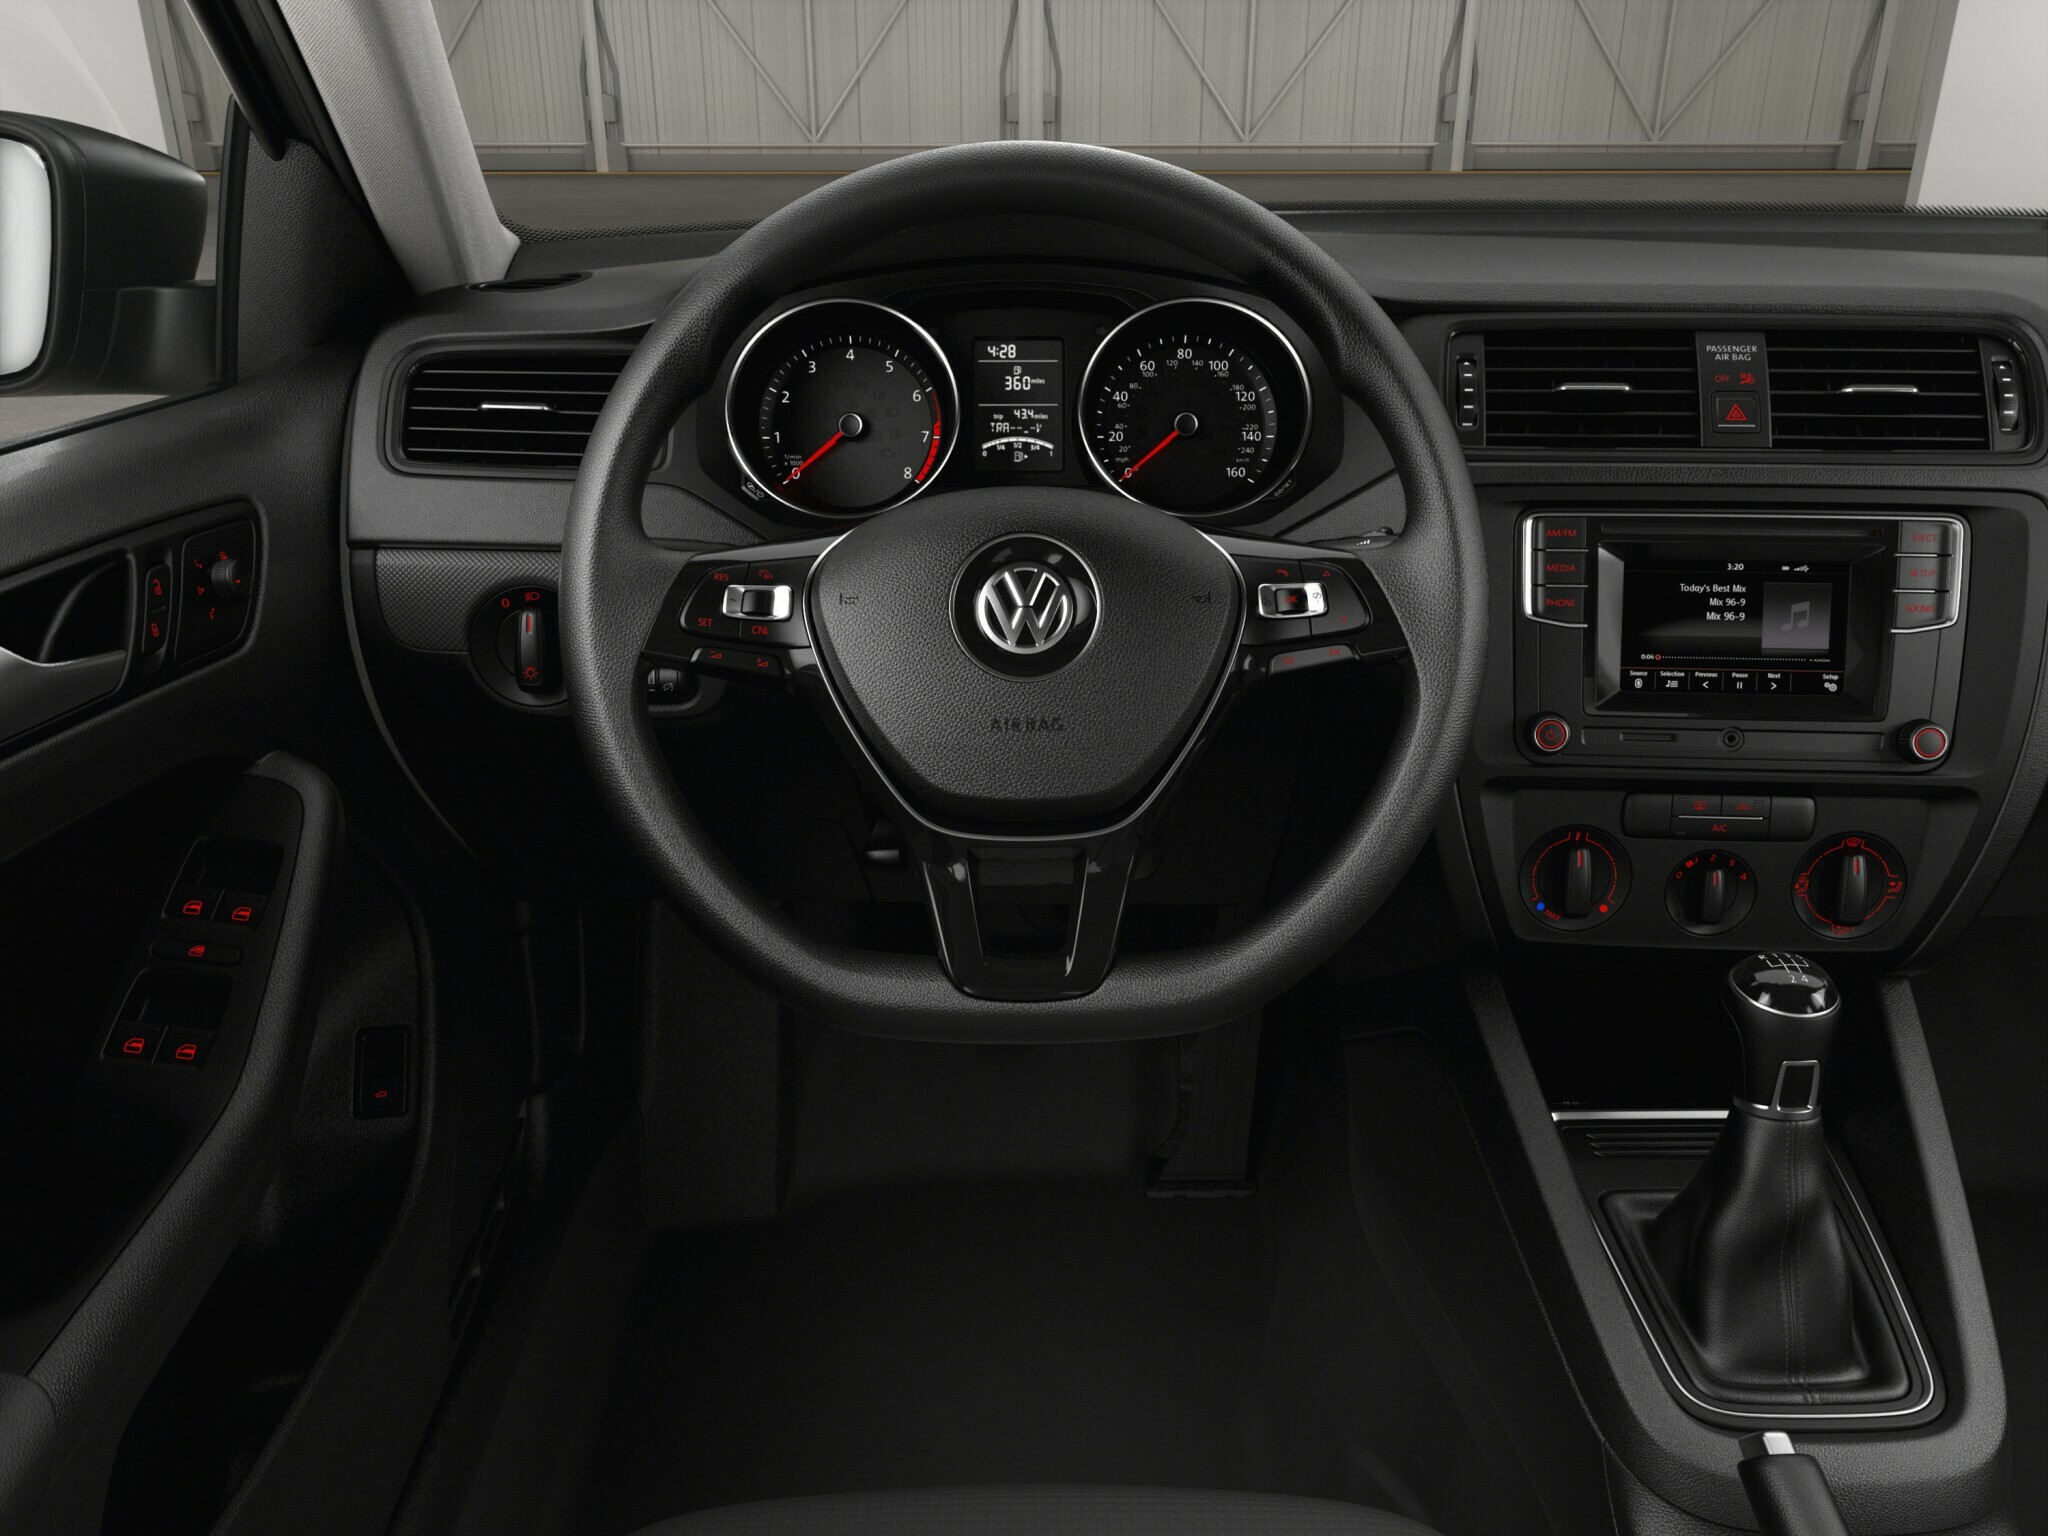 Volkswagon Jetta S | The Wagon